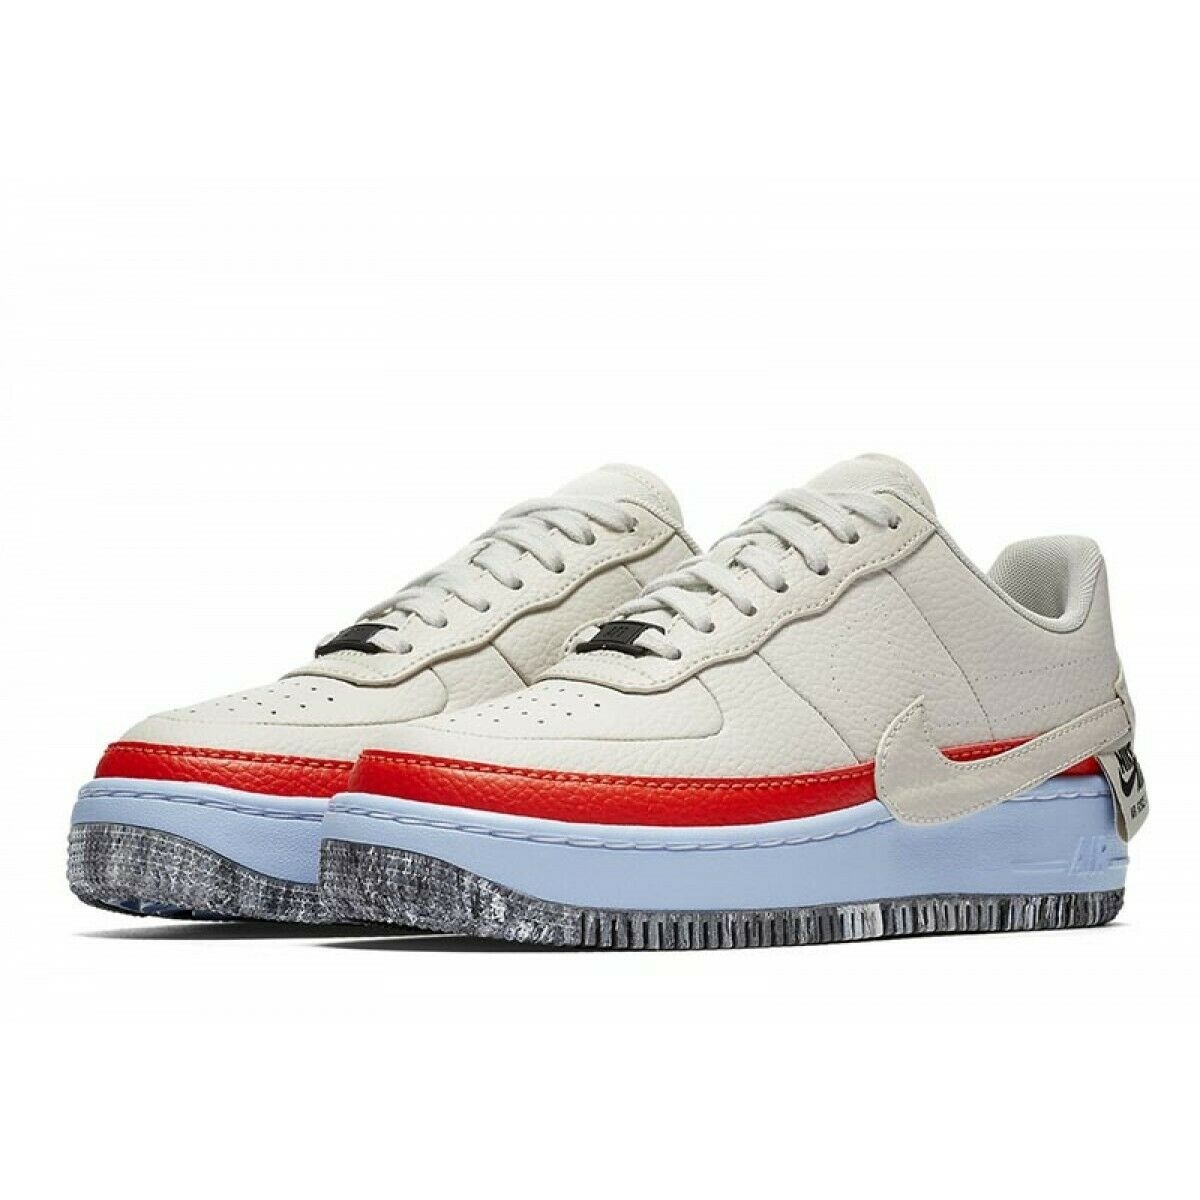 Détails sur WOMENS NIKE AIR FORCE 1 JESTER XX SE UK 2.5US 5EUR 35.5 BONEORANGEBLUE